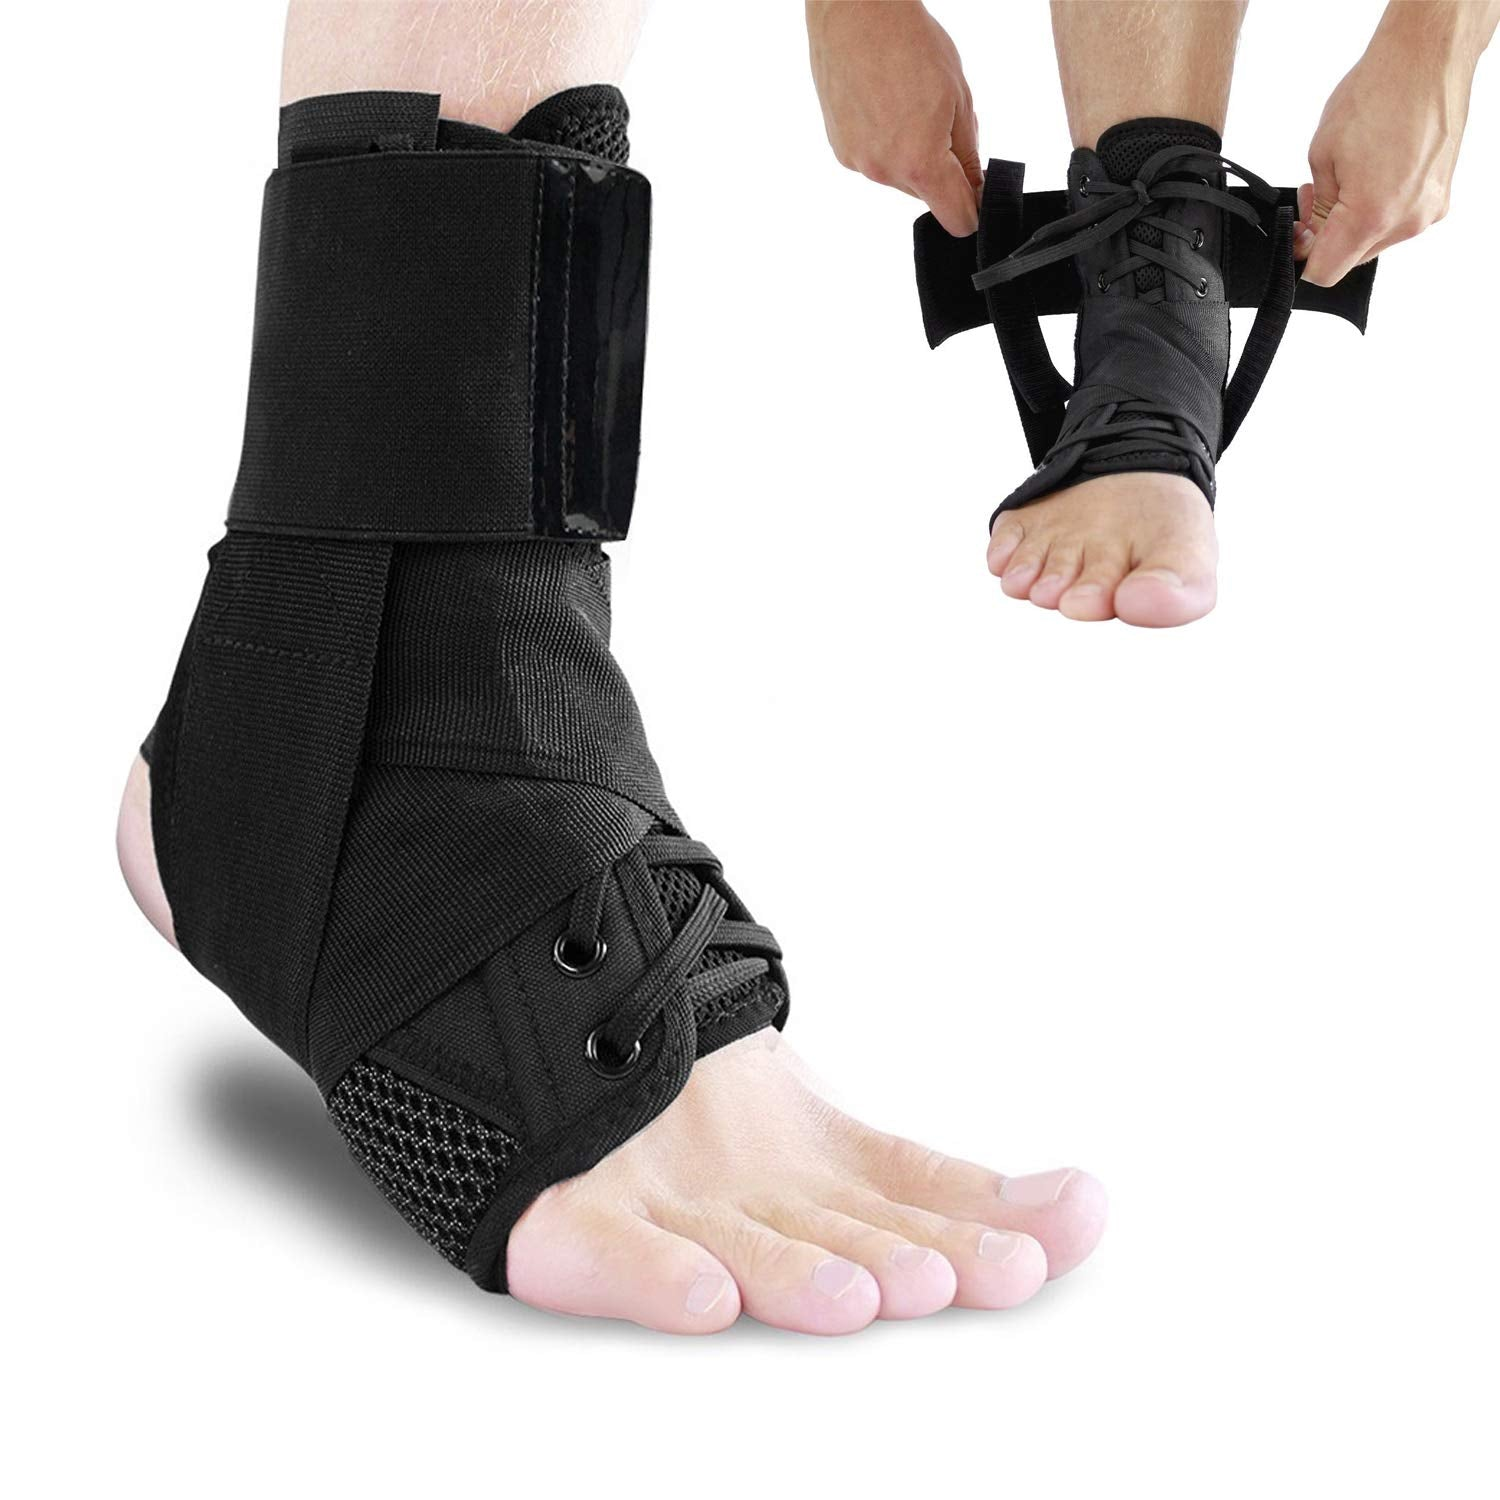 Lace up Ankle Brace Compression Support Wrap with Stabilizer Straps